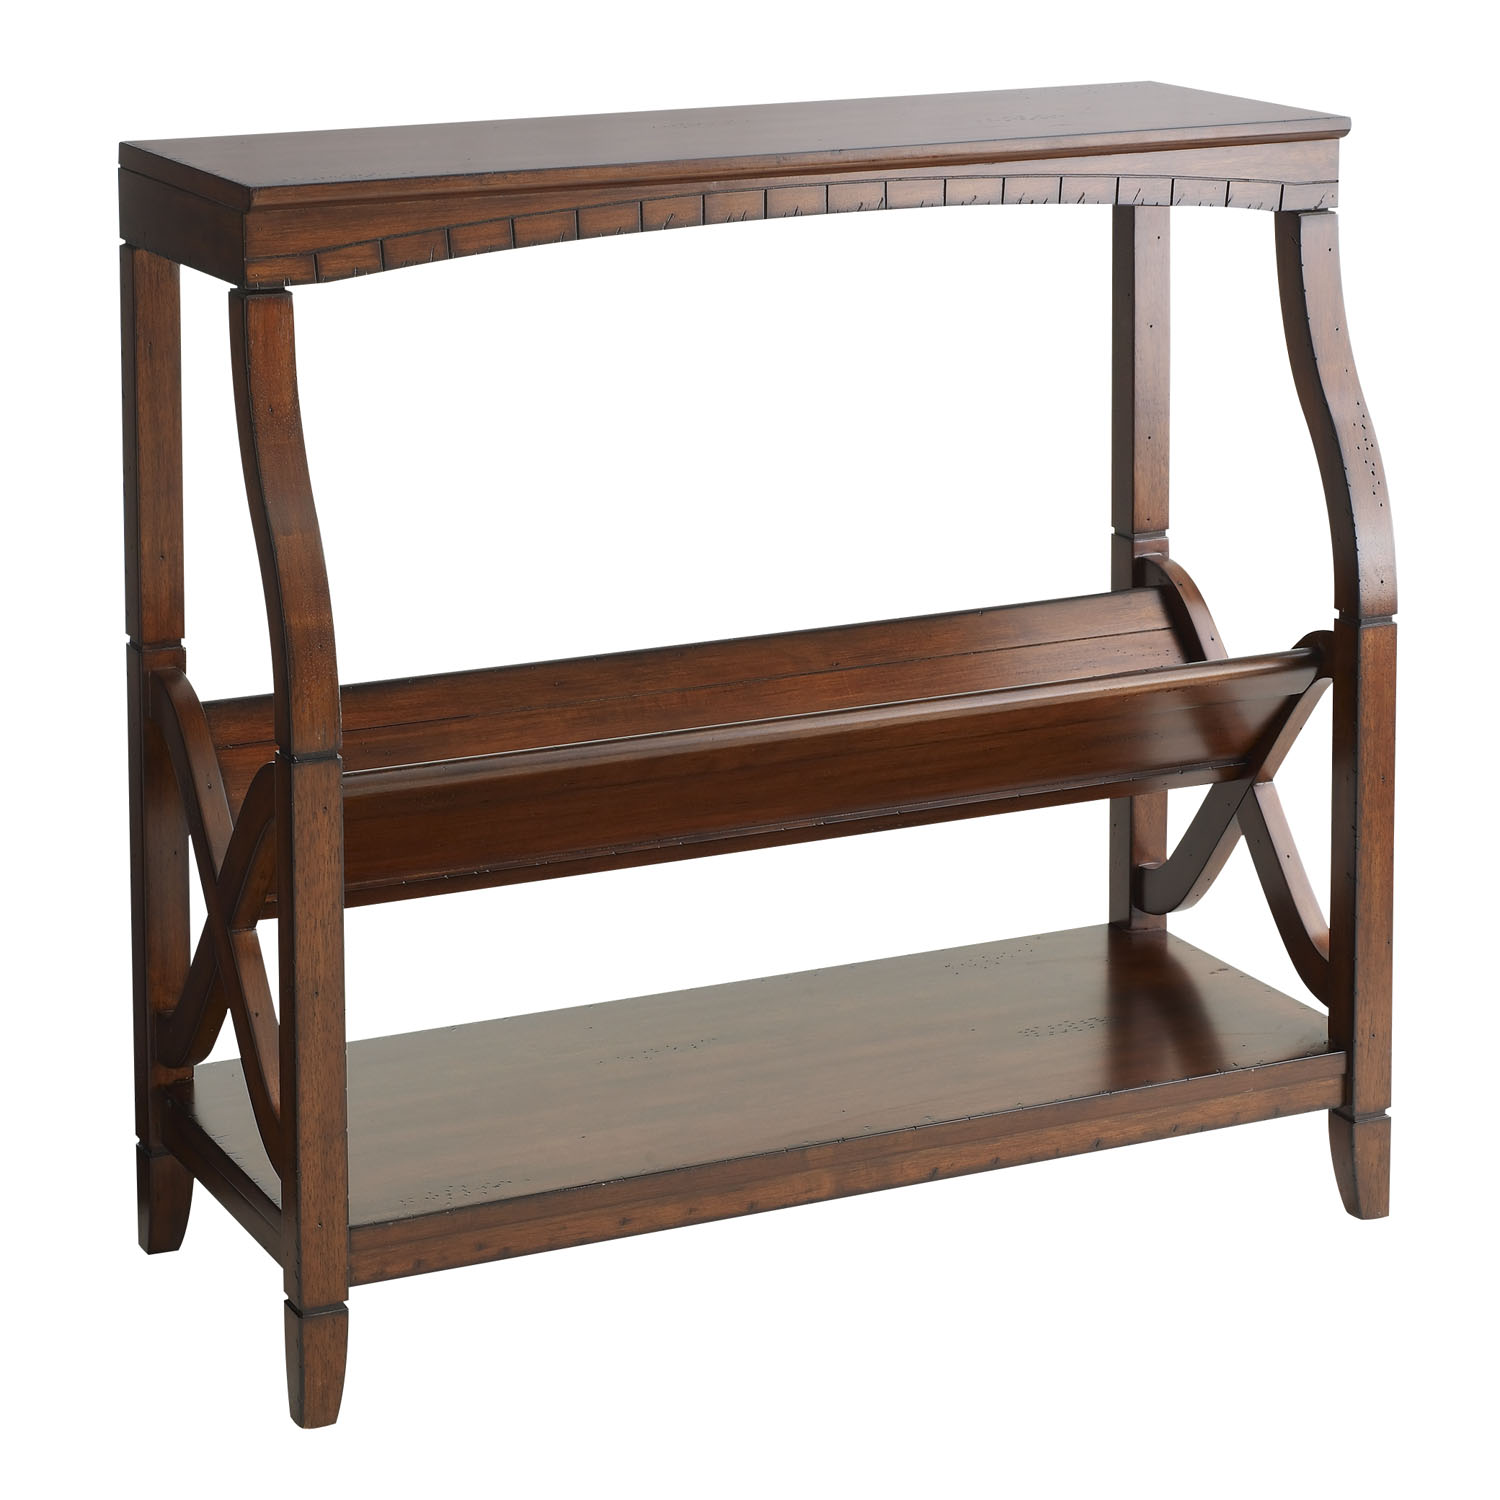 Bookseller Low Shelf - Mahogany Brown